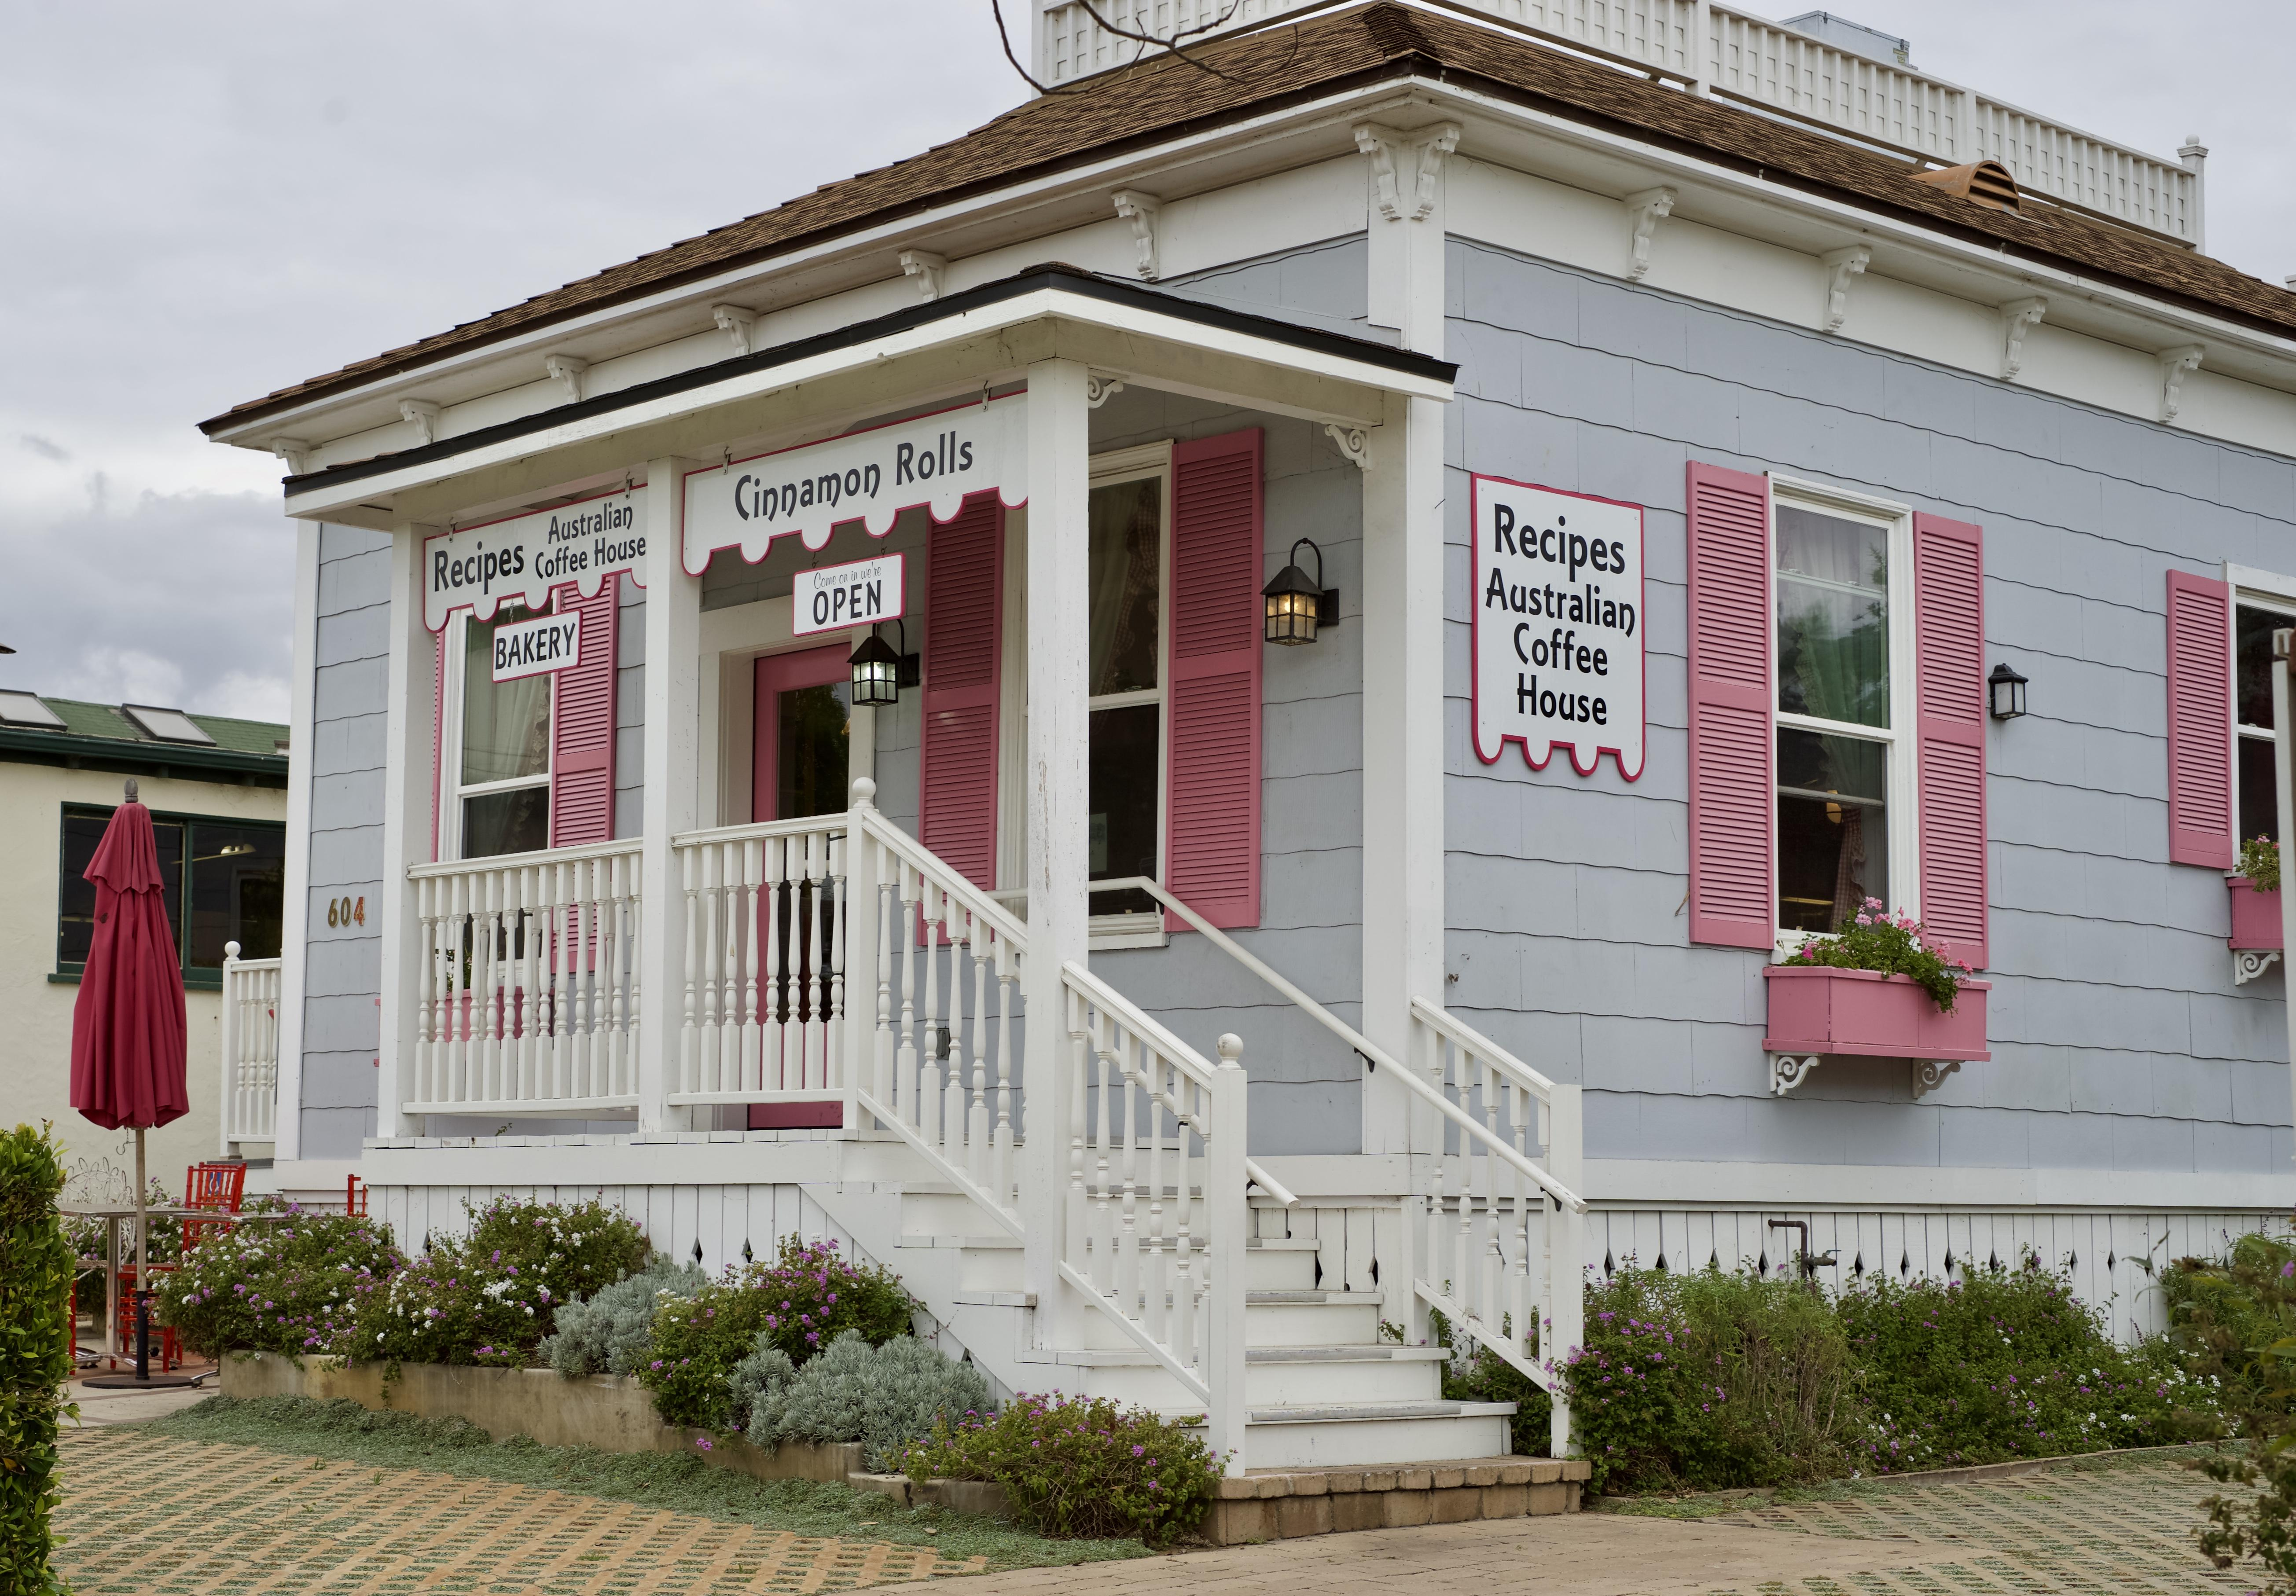 Recipes Organic Bakery is your Santa Barbara Home Away From Home